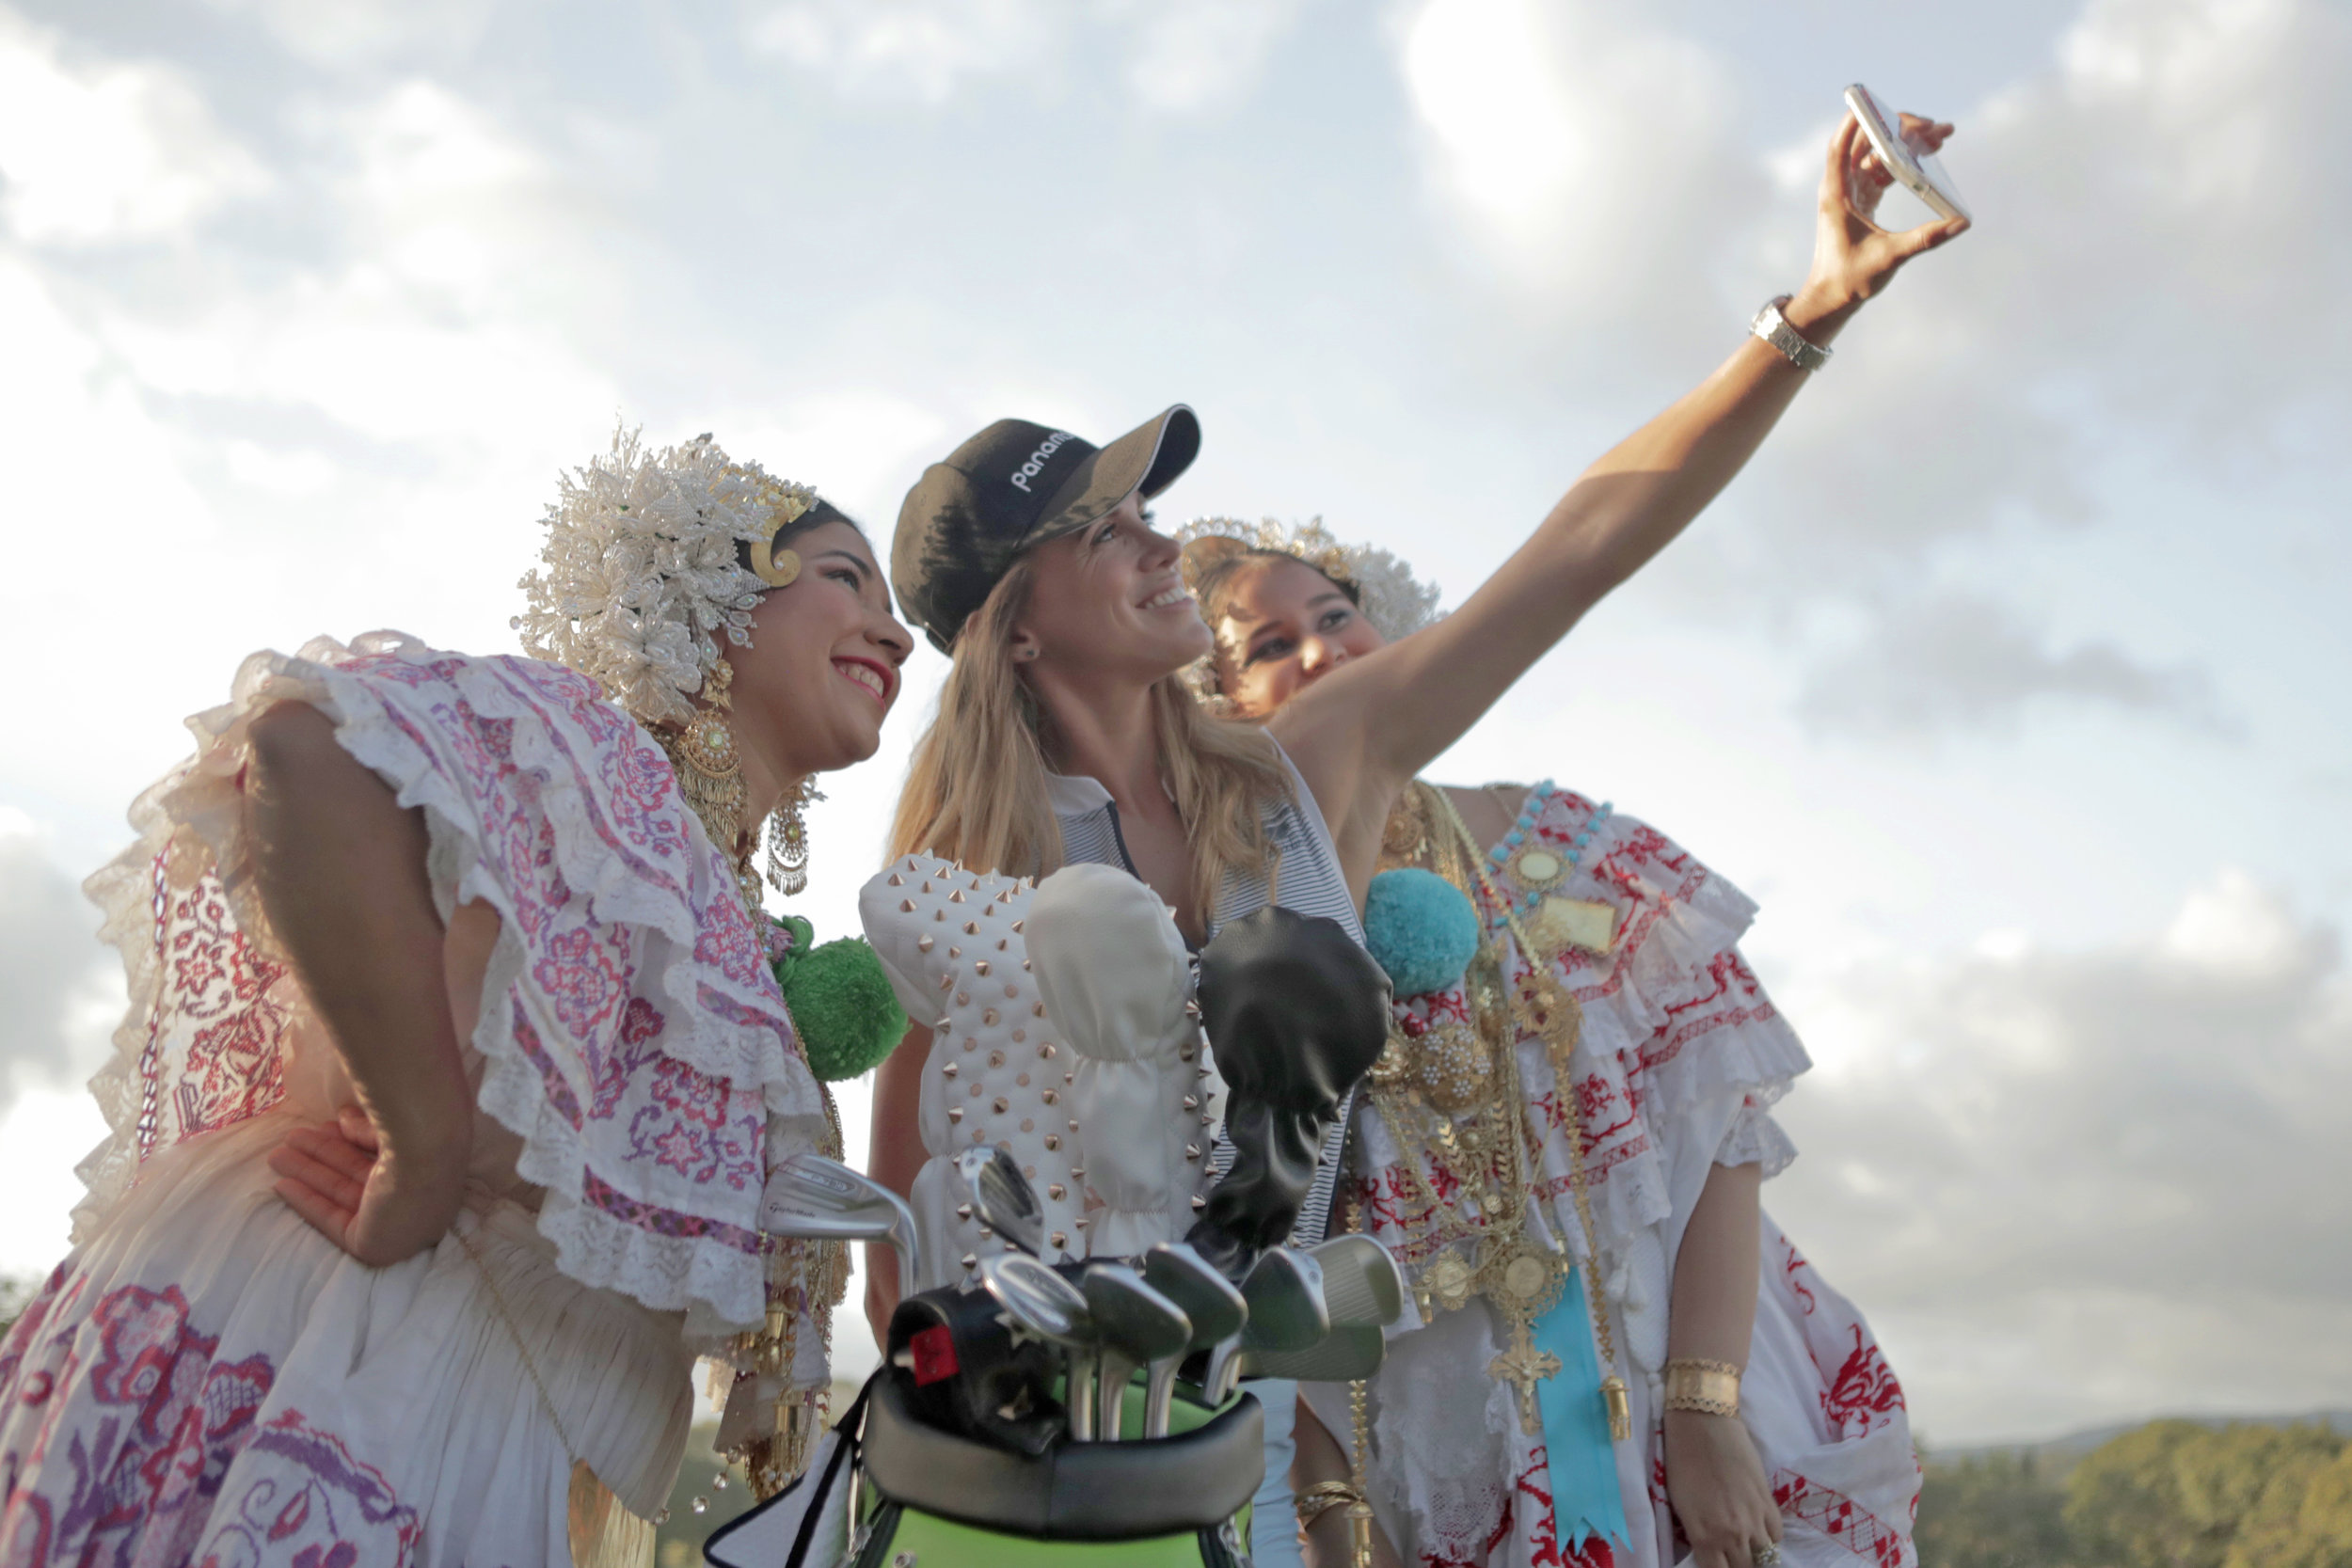 La Pollera is the national dress in Panama worn during festivals and celebrations. Almost convinced them to swop outfits.